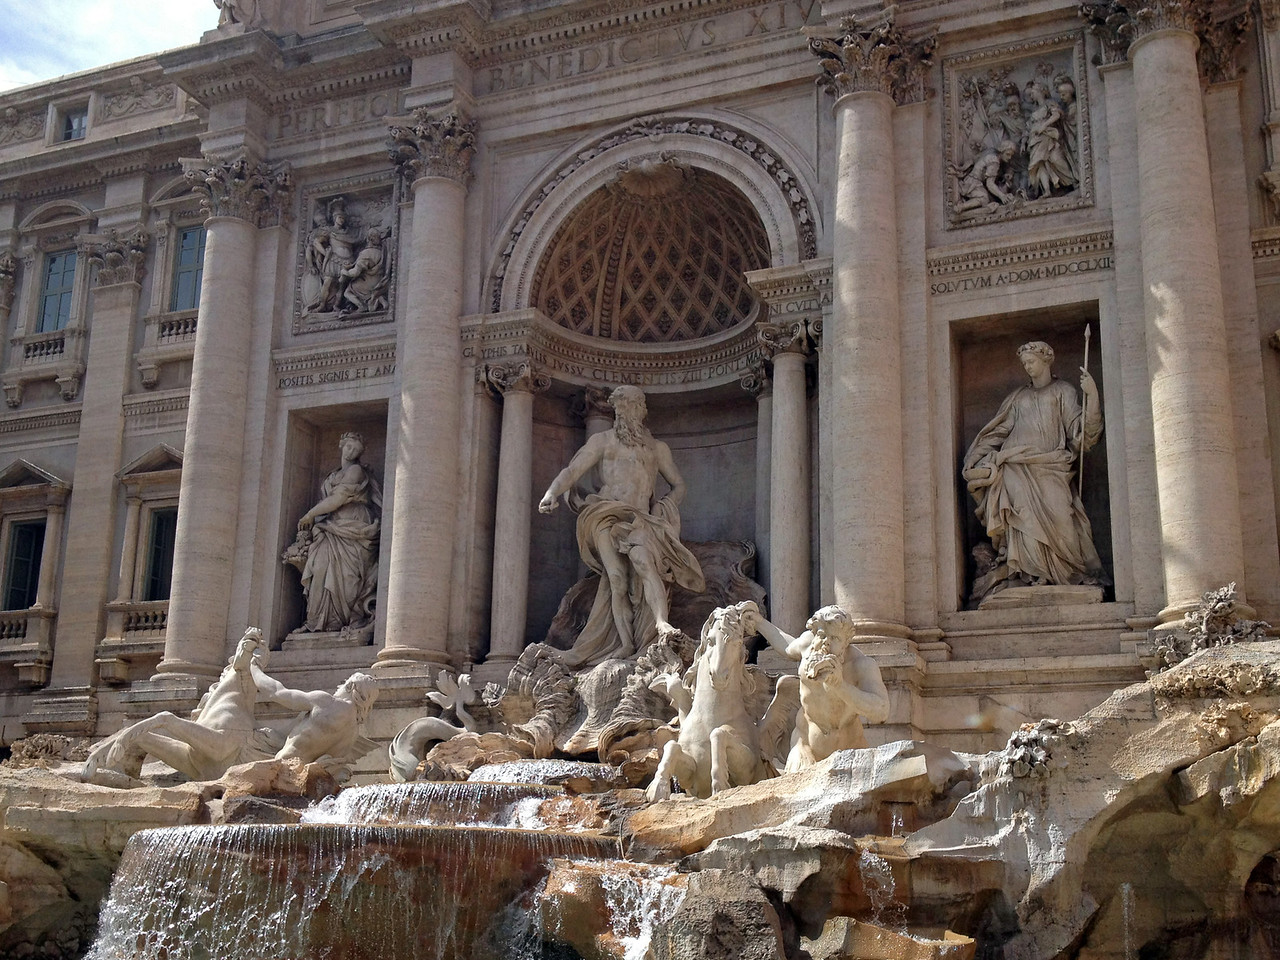 The Trevi Fountain is the largest Baroque fountain in the city of Rome and one of the most famous fountains in the world. The original fountain was built in 19BC as a way to offer fresh water to the city dwellers. It received a makeover in 1629 by Pope Urban VIII - many special design features are attributed to the famous artist Bernini.<br /> <br /> A traditional legend holds that if you throw a coin into the fountain, you are ensured a return trip to Rome…I should know, it worked for me.